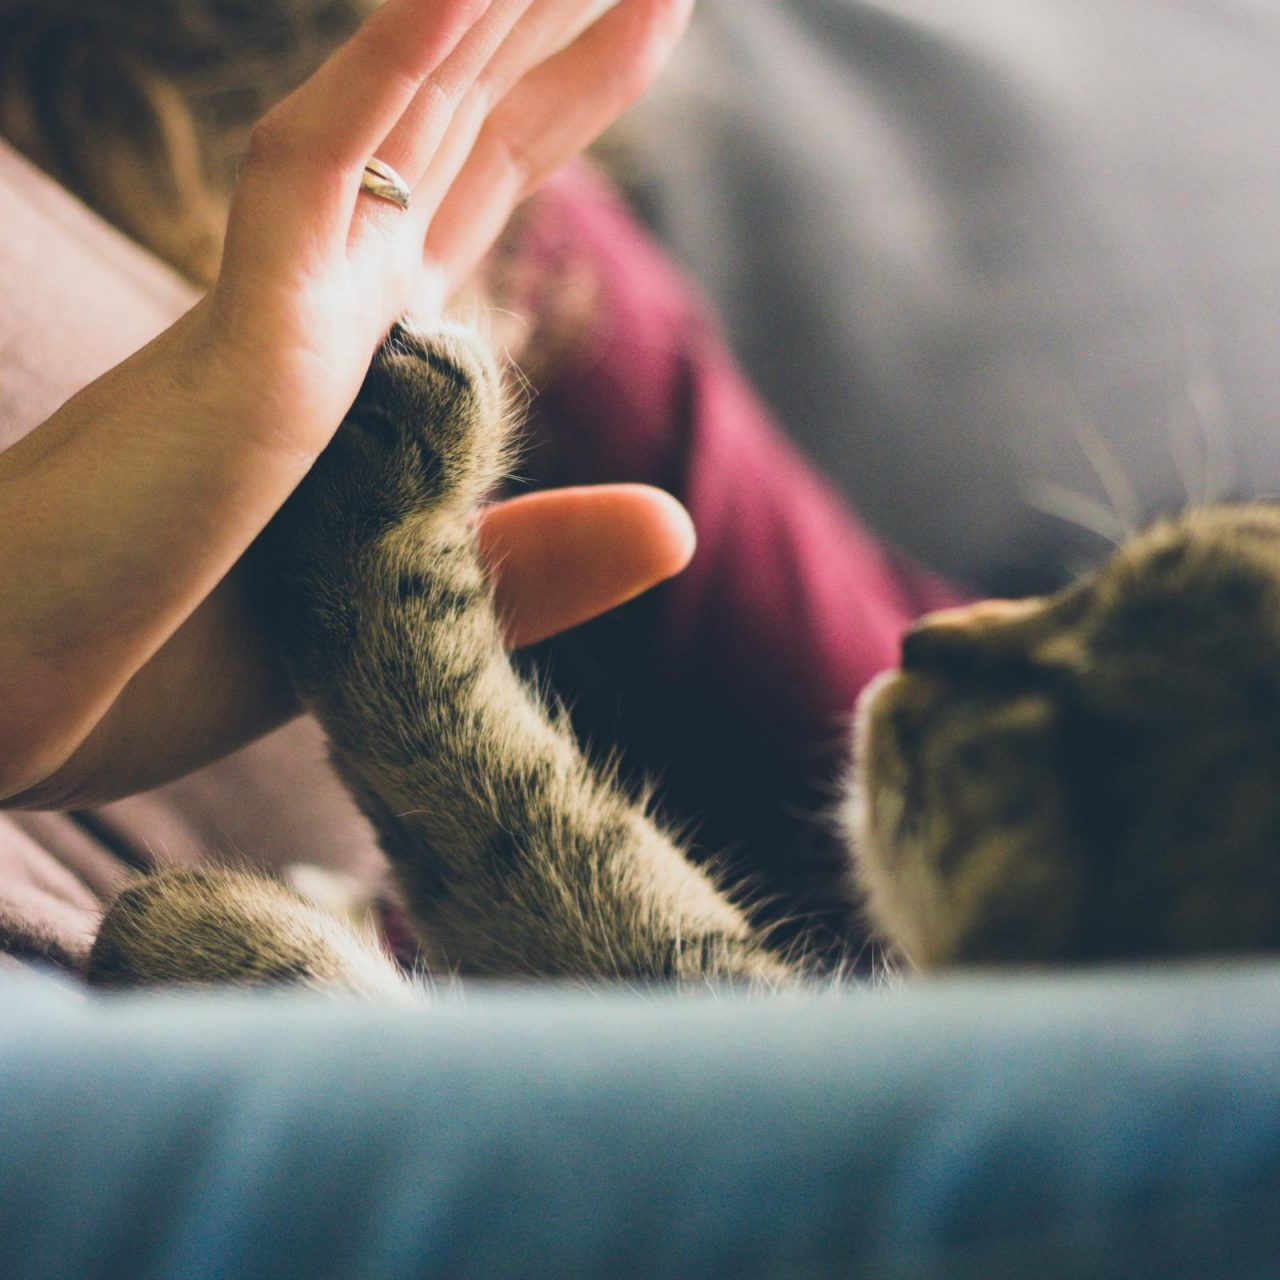 Taking Care of Your Kitties during COVID-19